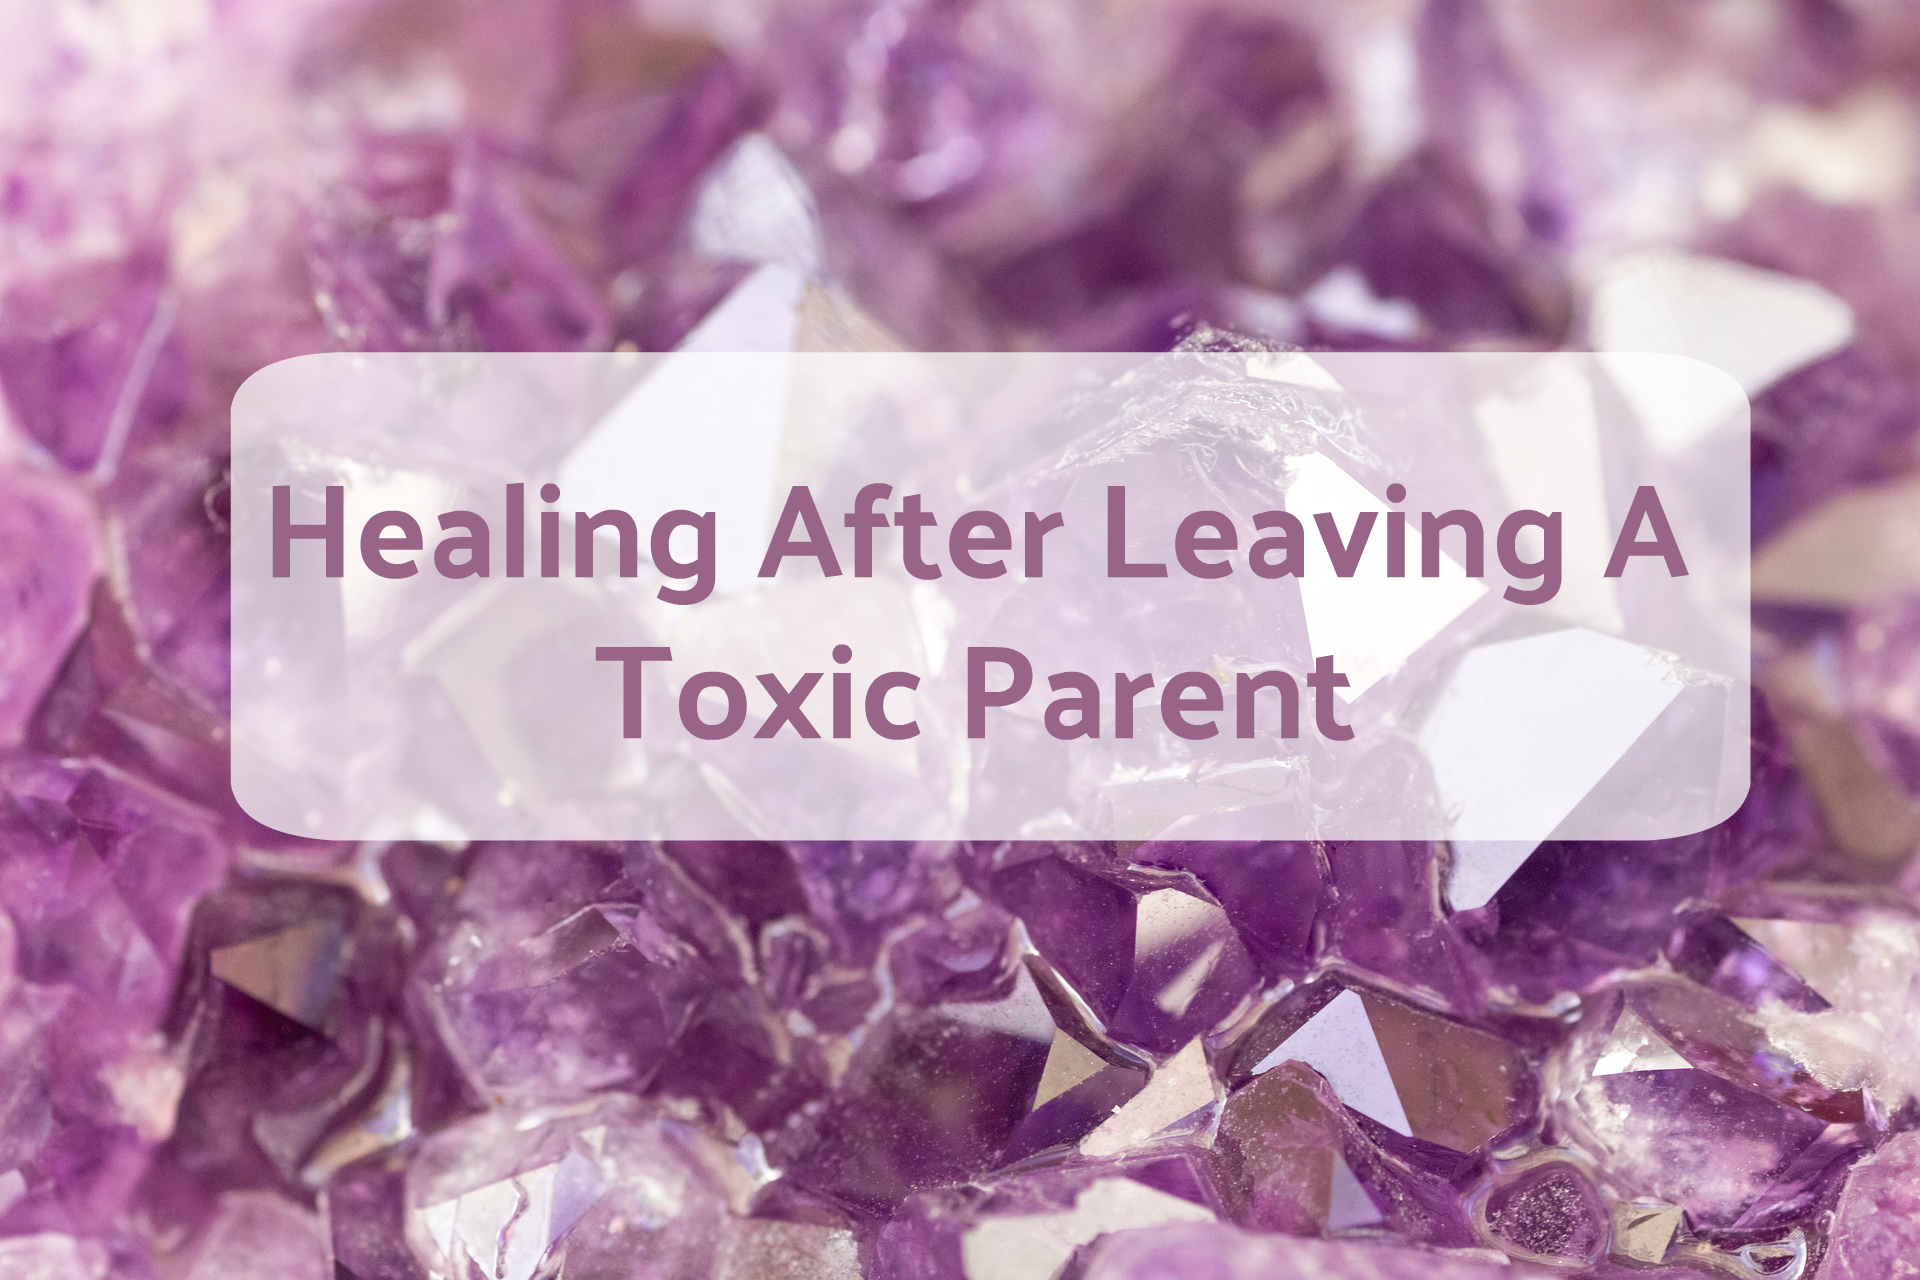 Healing After Leaving A Toxic Parent